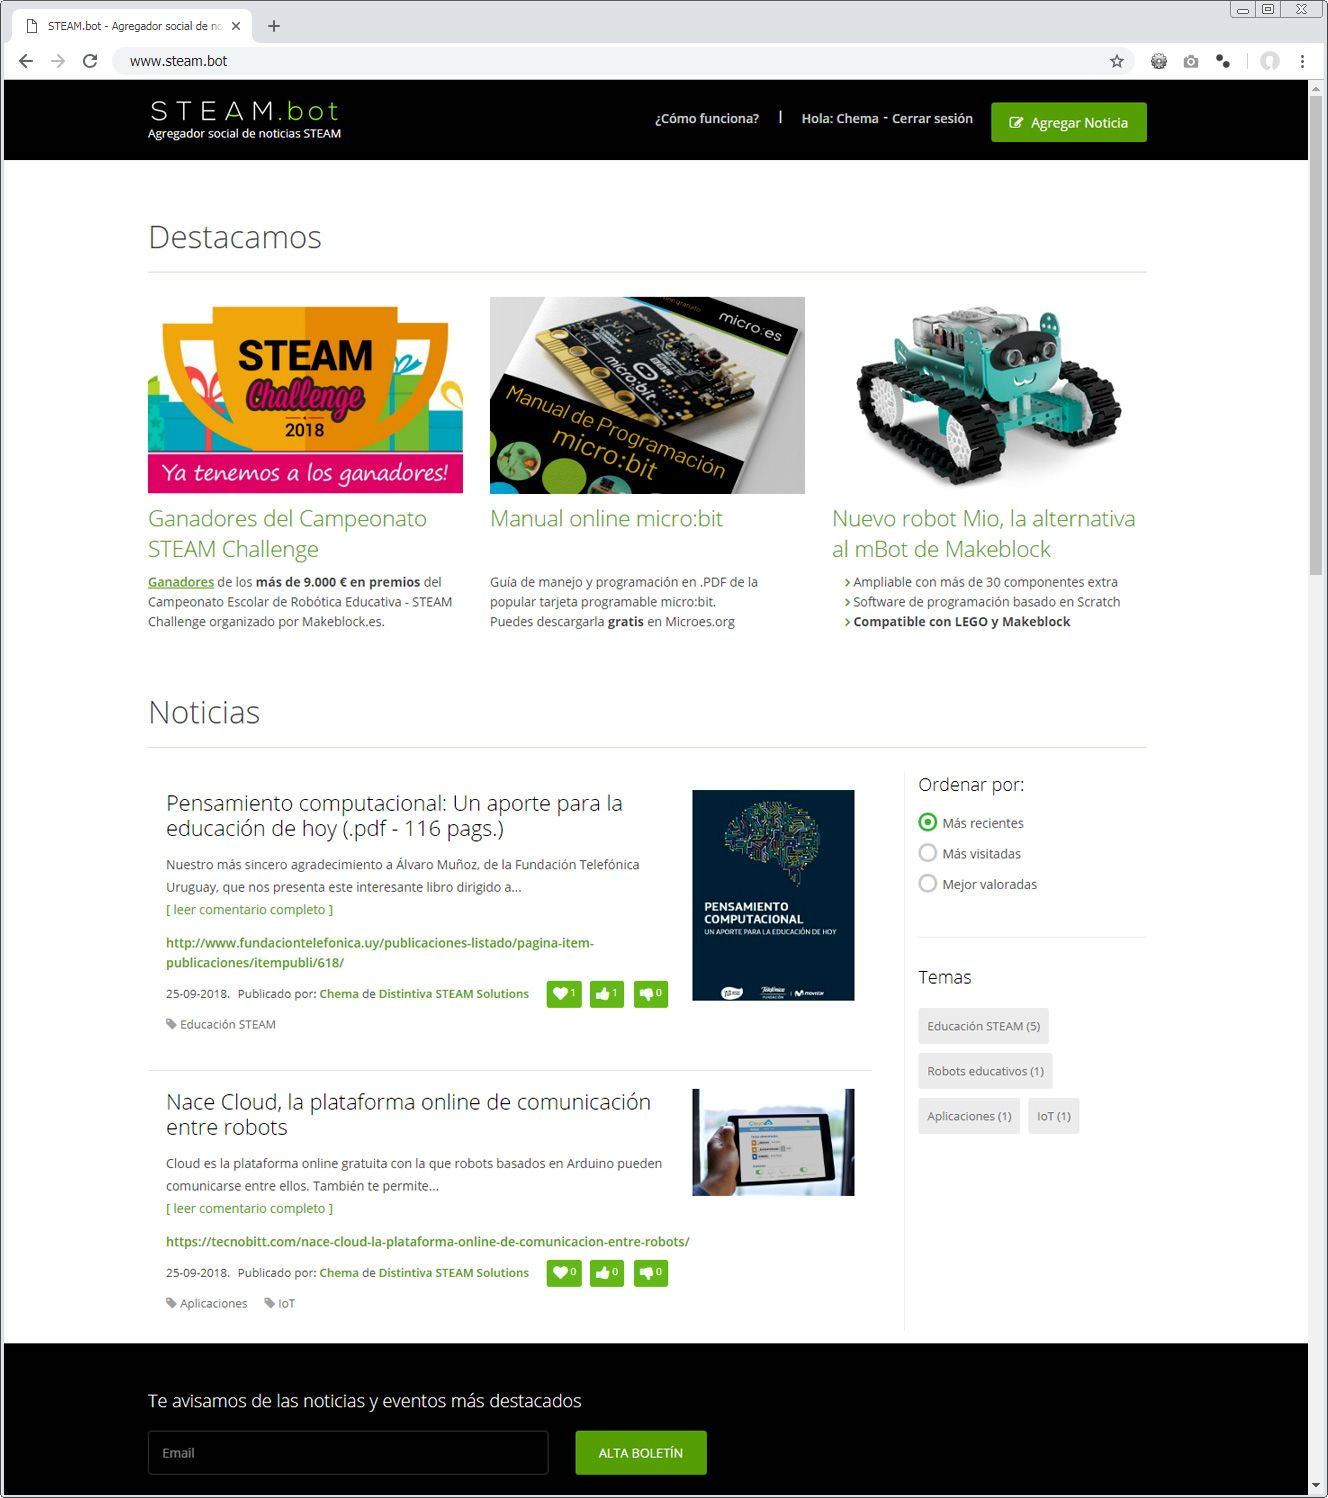 Nace STEAM.bot, Agregador Social de Noticias STEAM